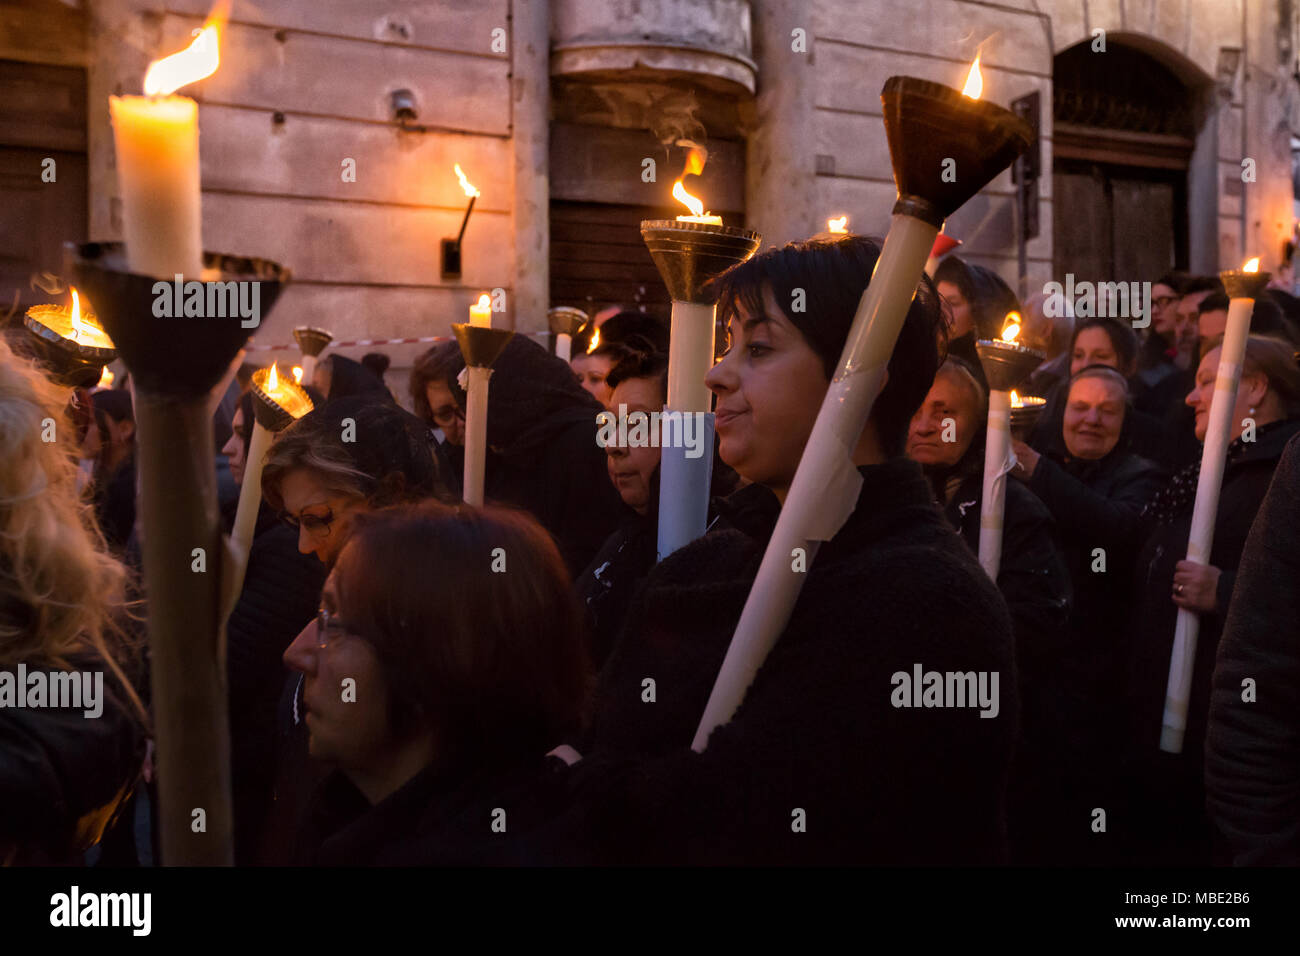 SESSA AURUNCA, ITALY - MARCH 30-31, 2018 - Holy week in Sessa Aurunca, southern Italy, is celebrated with some religious rites. On Good Friday, at sunset, the parade of black hoods slowly walks through the streets of the town. At the bottom of the procession, a lot of women carry heavy candles and pray to Christ to receive the grace. - Stock Image